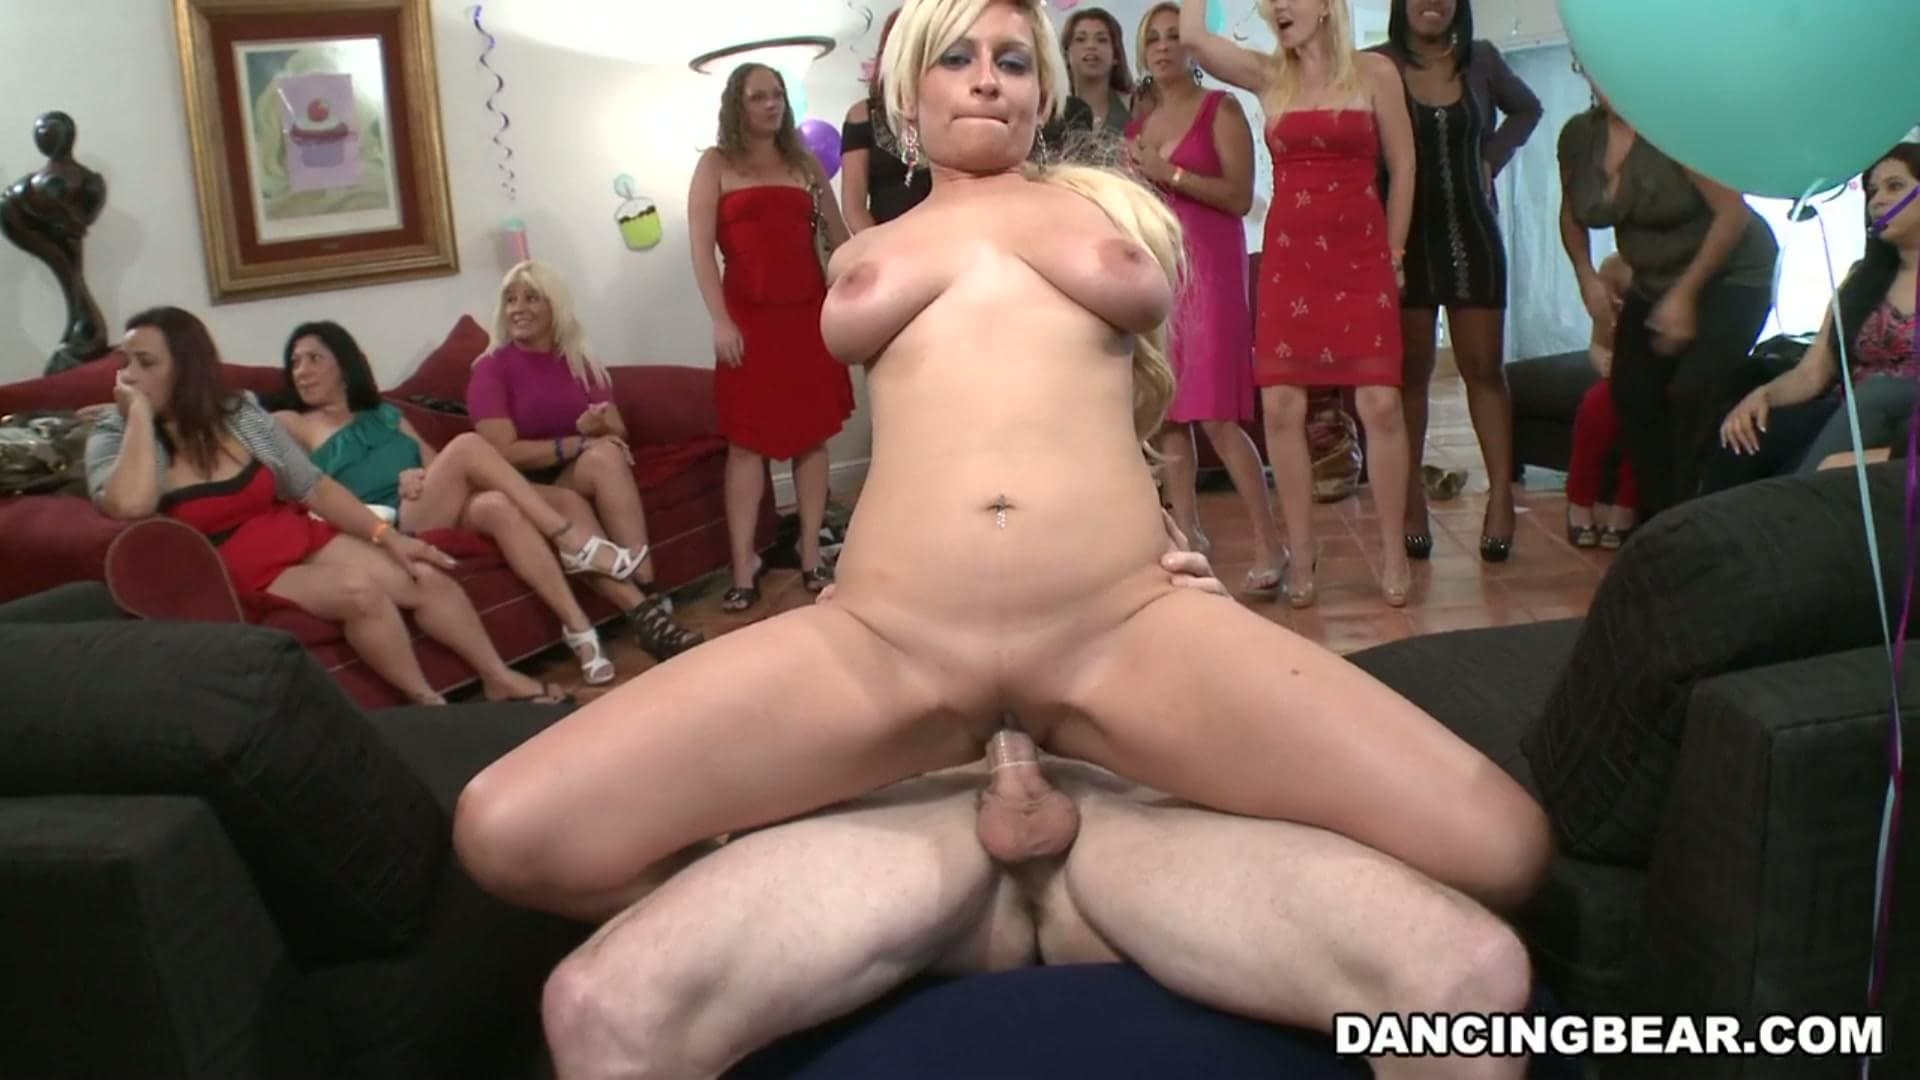 Girl fucked while friends watch